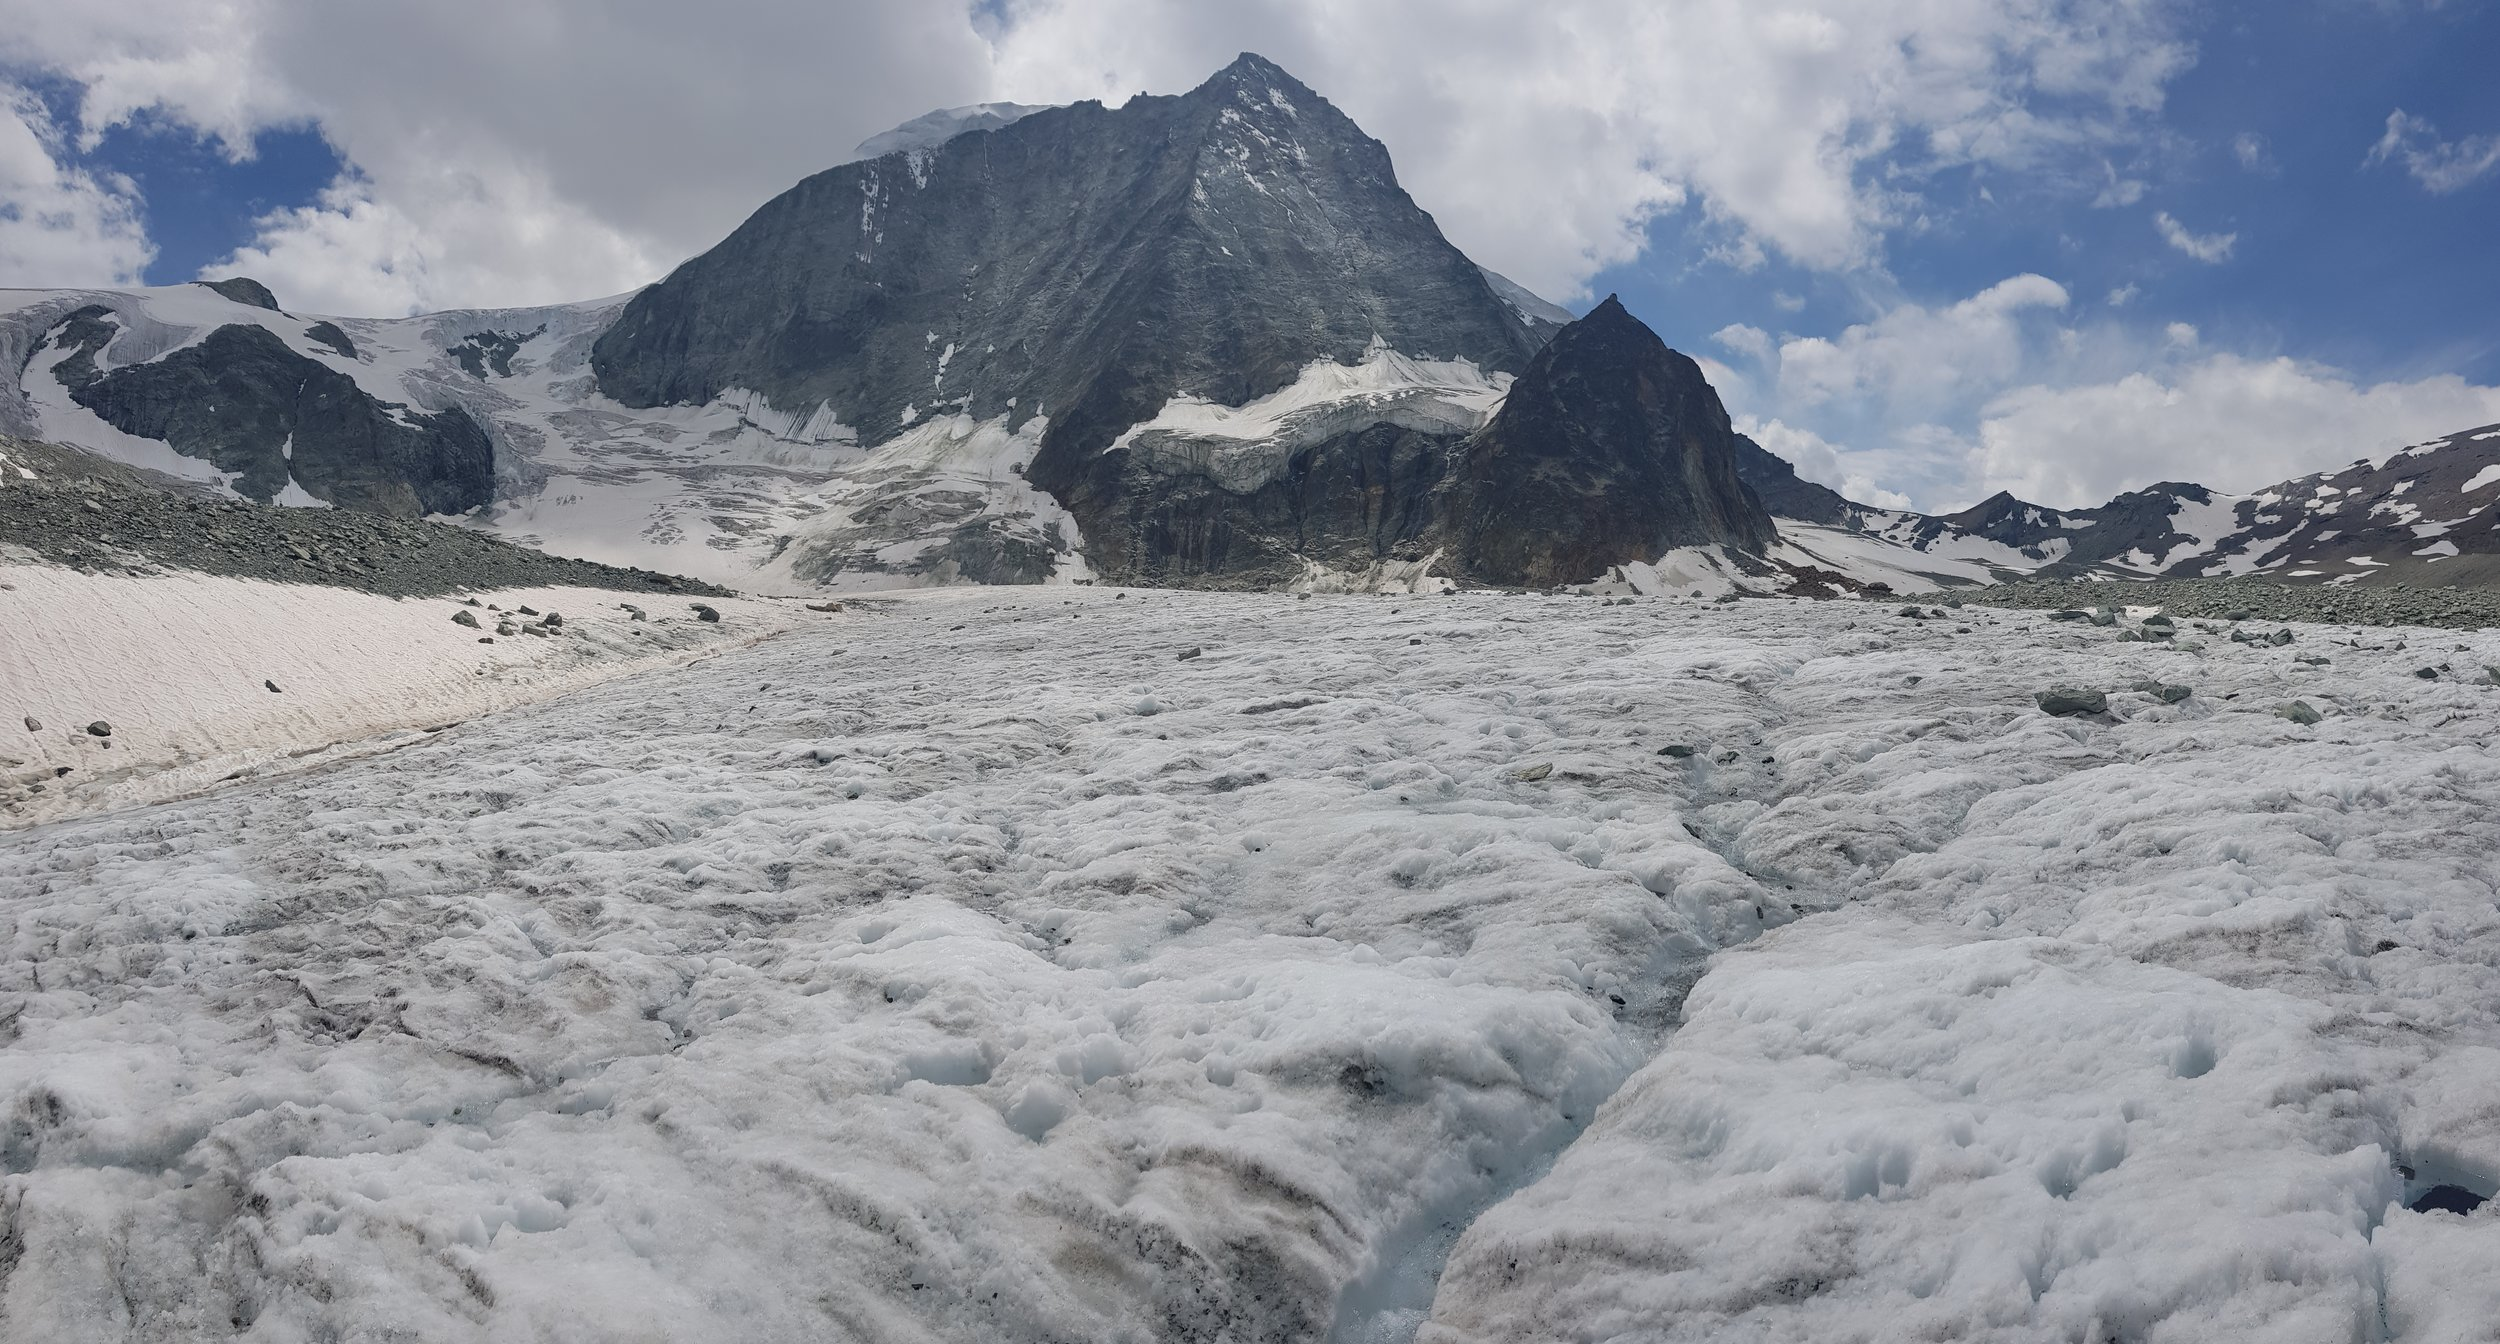 Crossing Glacier de Cheilon that has noticeably receded in the last two years. Given the changing nature of glaciers, it is best to check at Cabane Des Dix whether the trail is safe at that time.